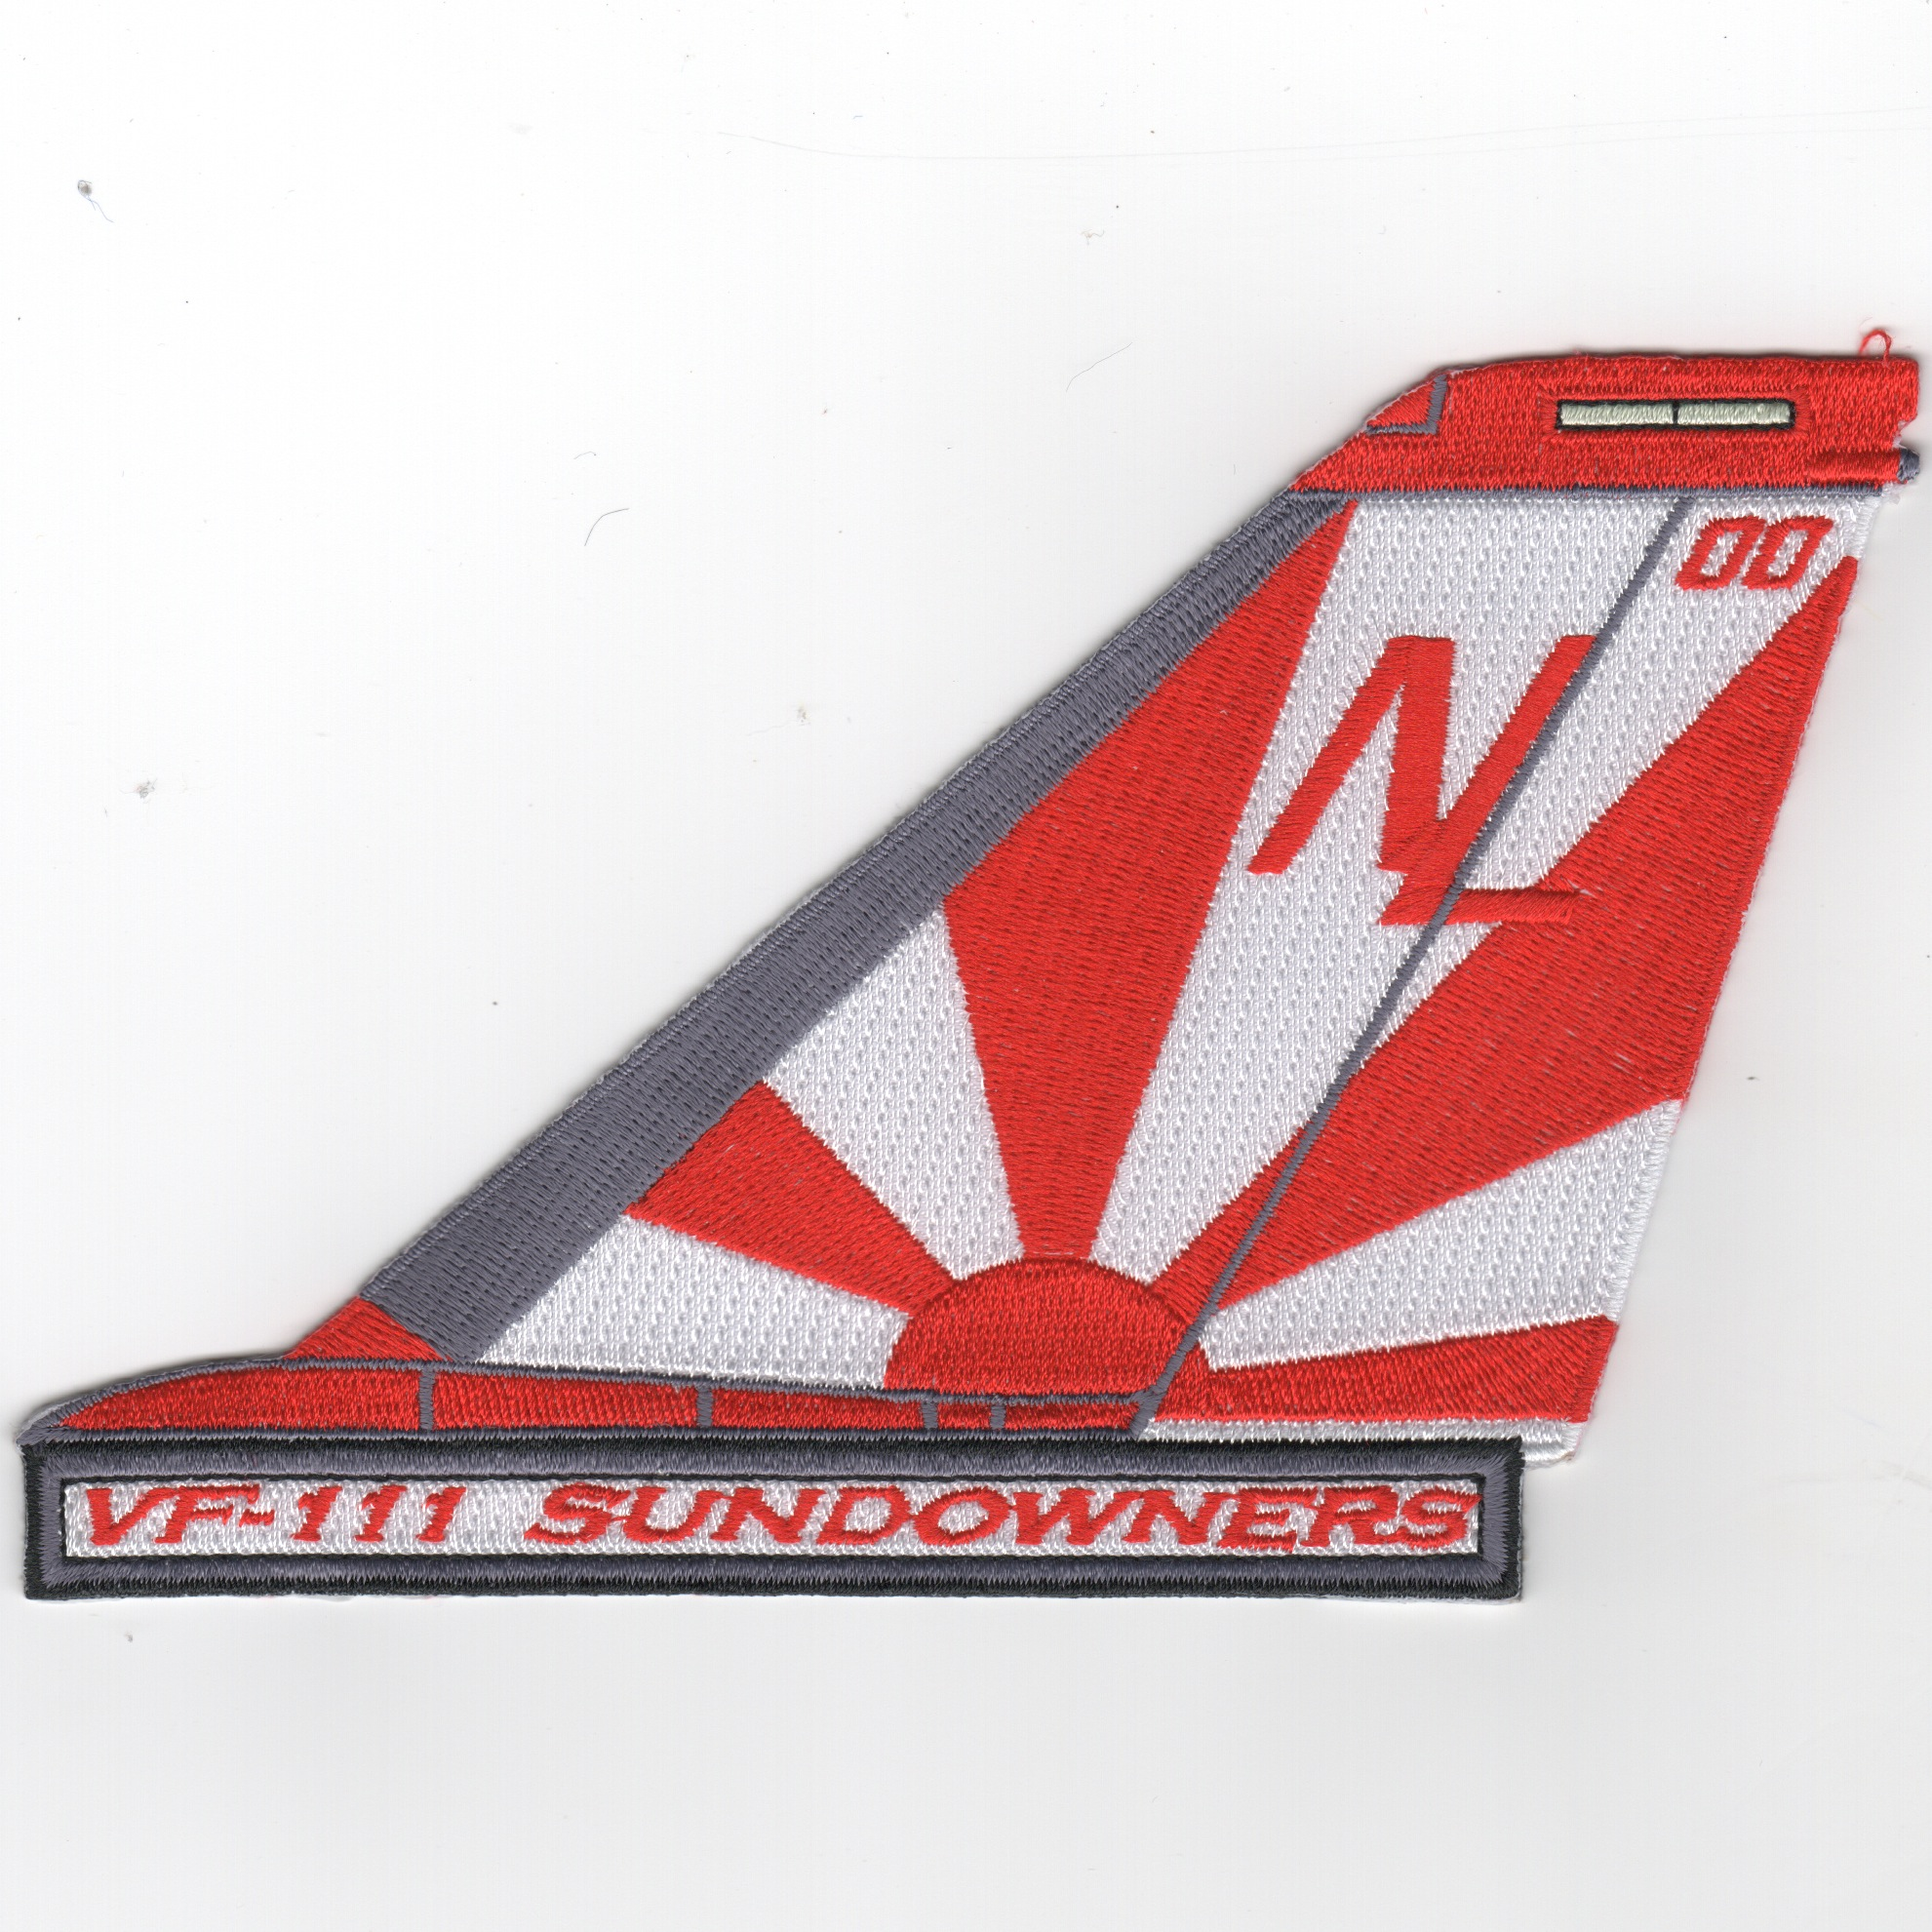 VF-111 F-14 Tailfin (Text/Red-White)